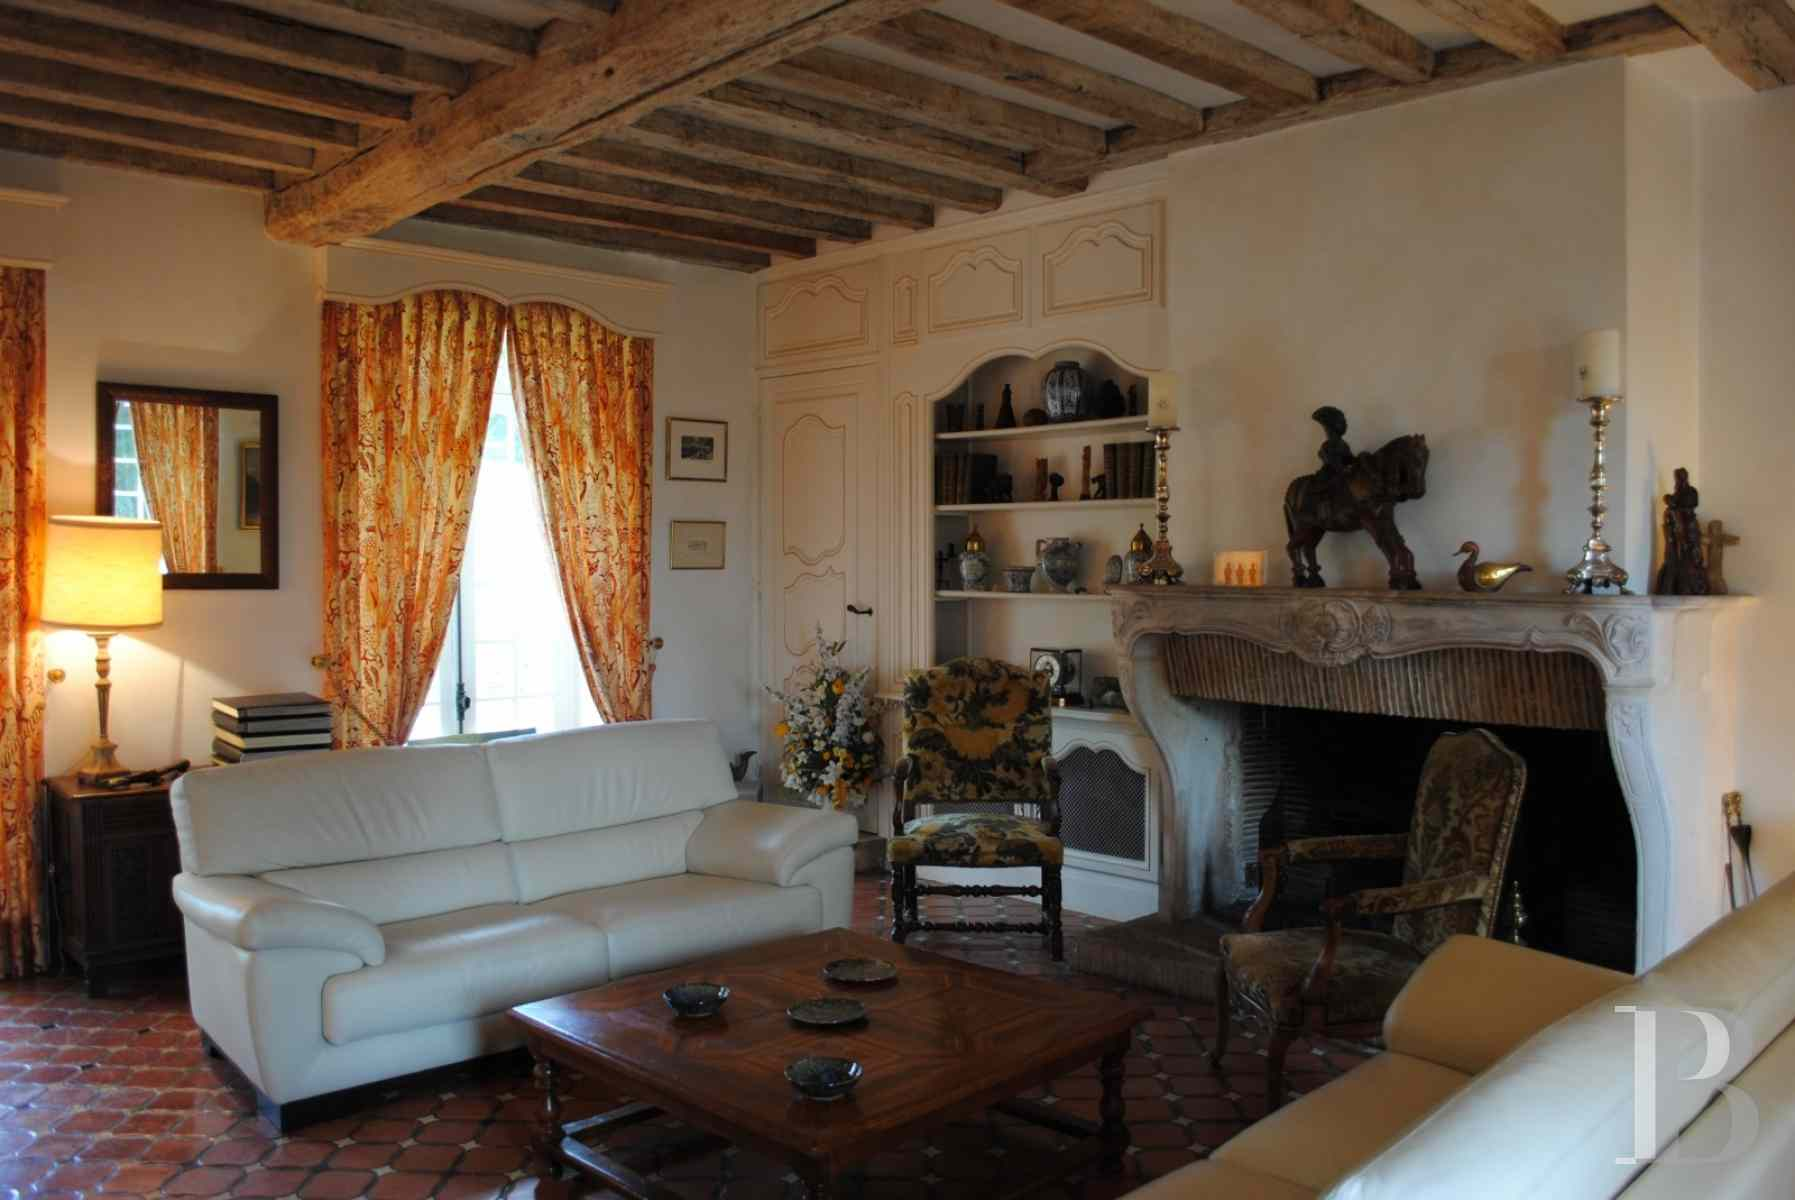 french farms for sale picardy vexin seigneurial - 15 zoom